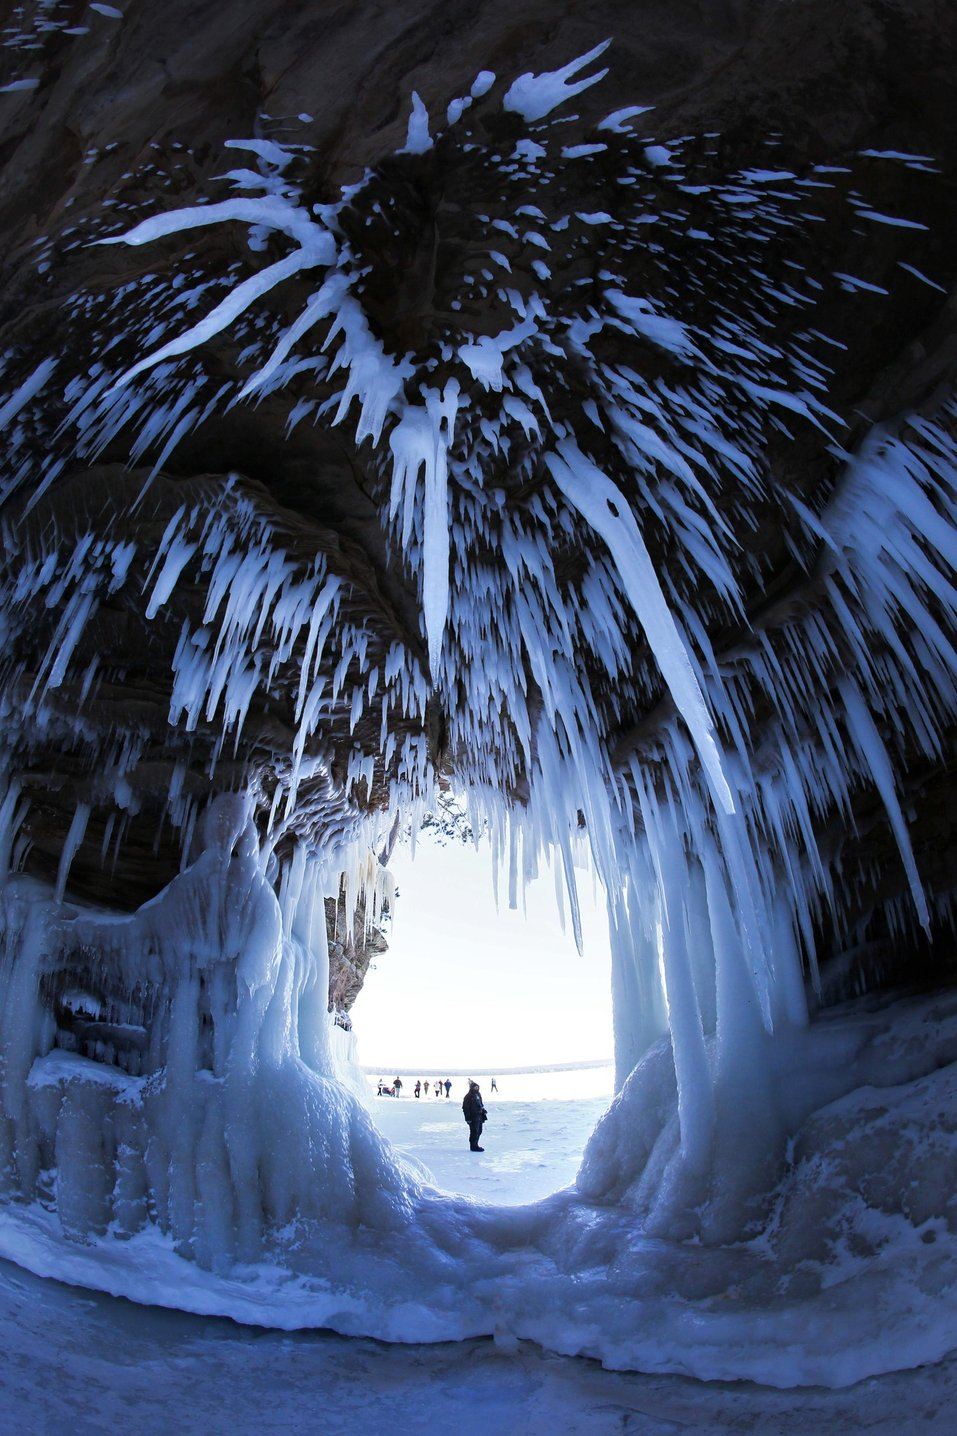 la-ice-caves-20140217-photos-005.jpeg